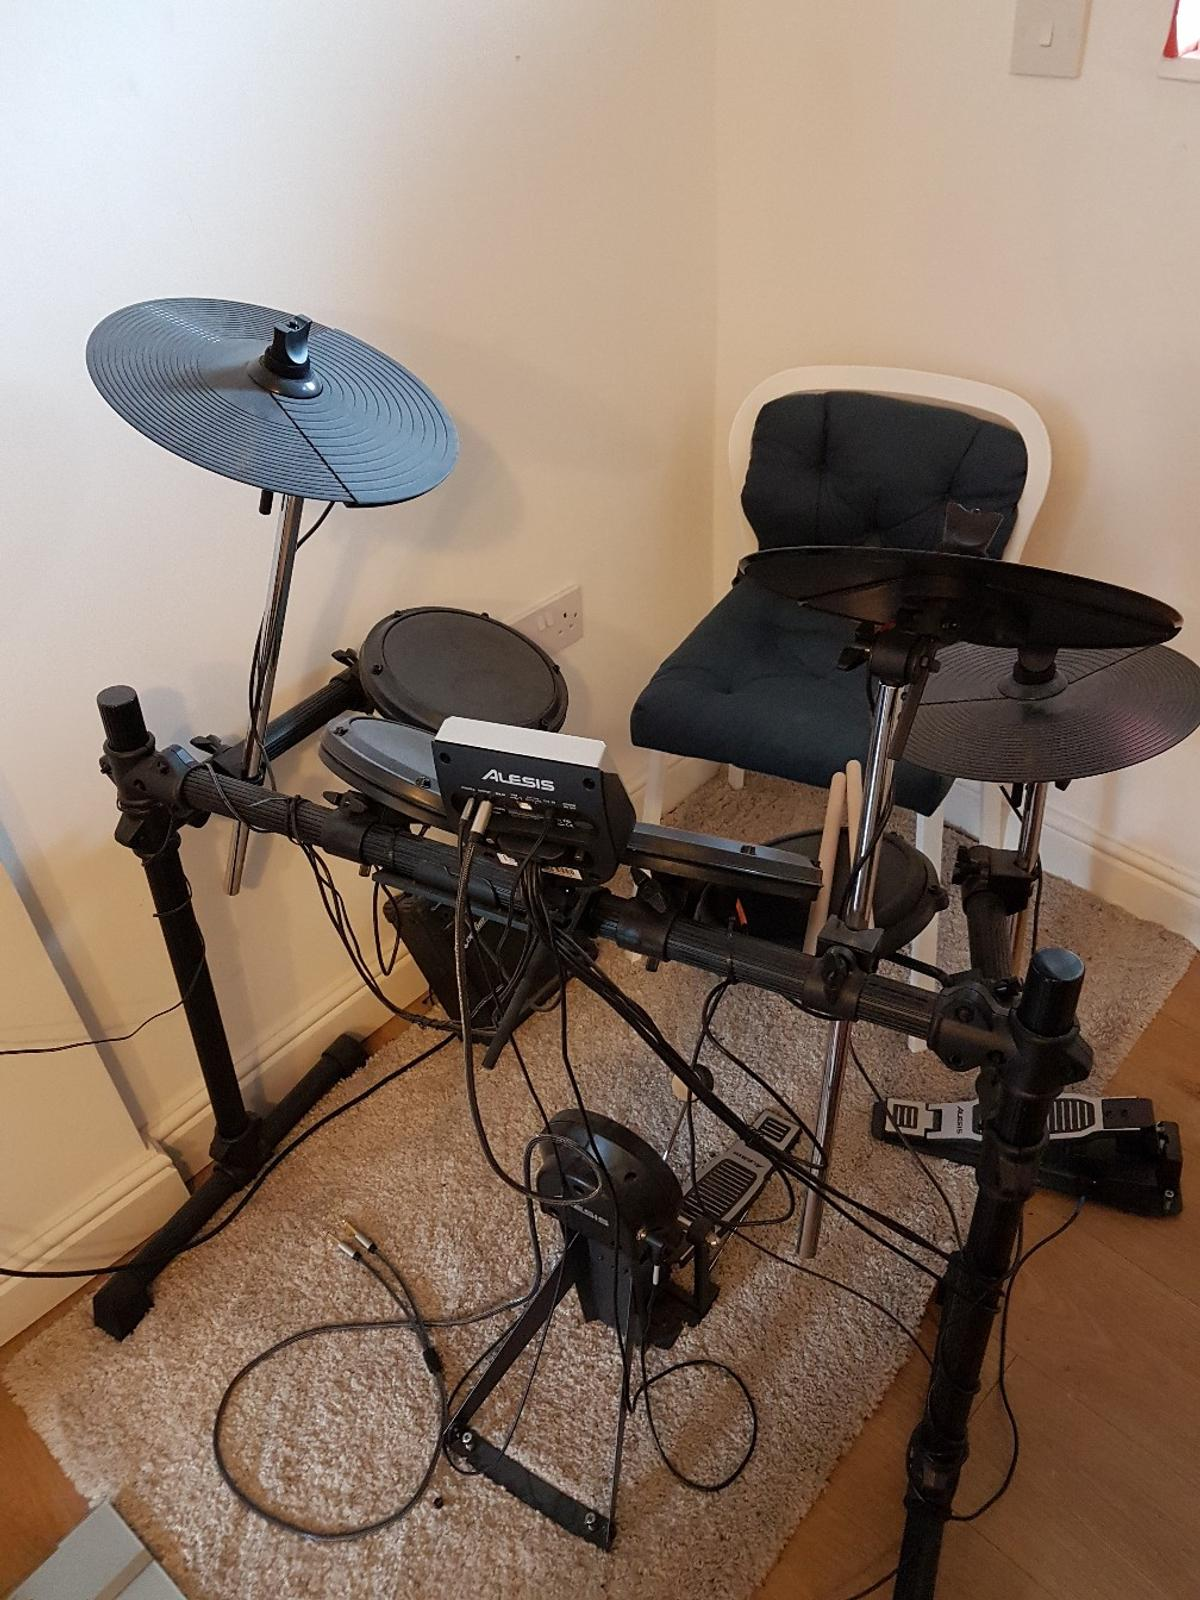 Electronic Drum Kit - Alesis DM6 USB Kit in NW1 London for £100 00